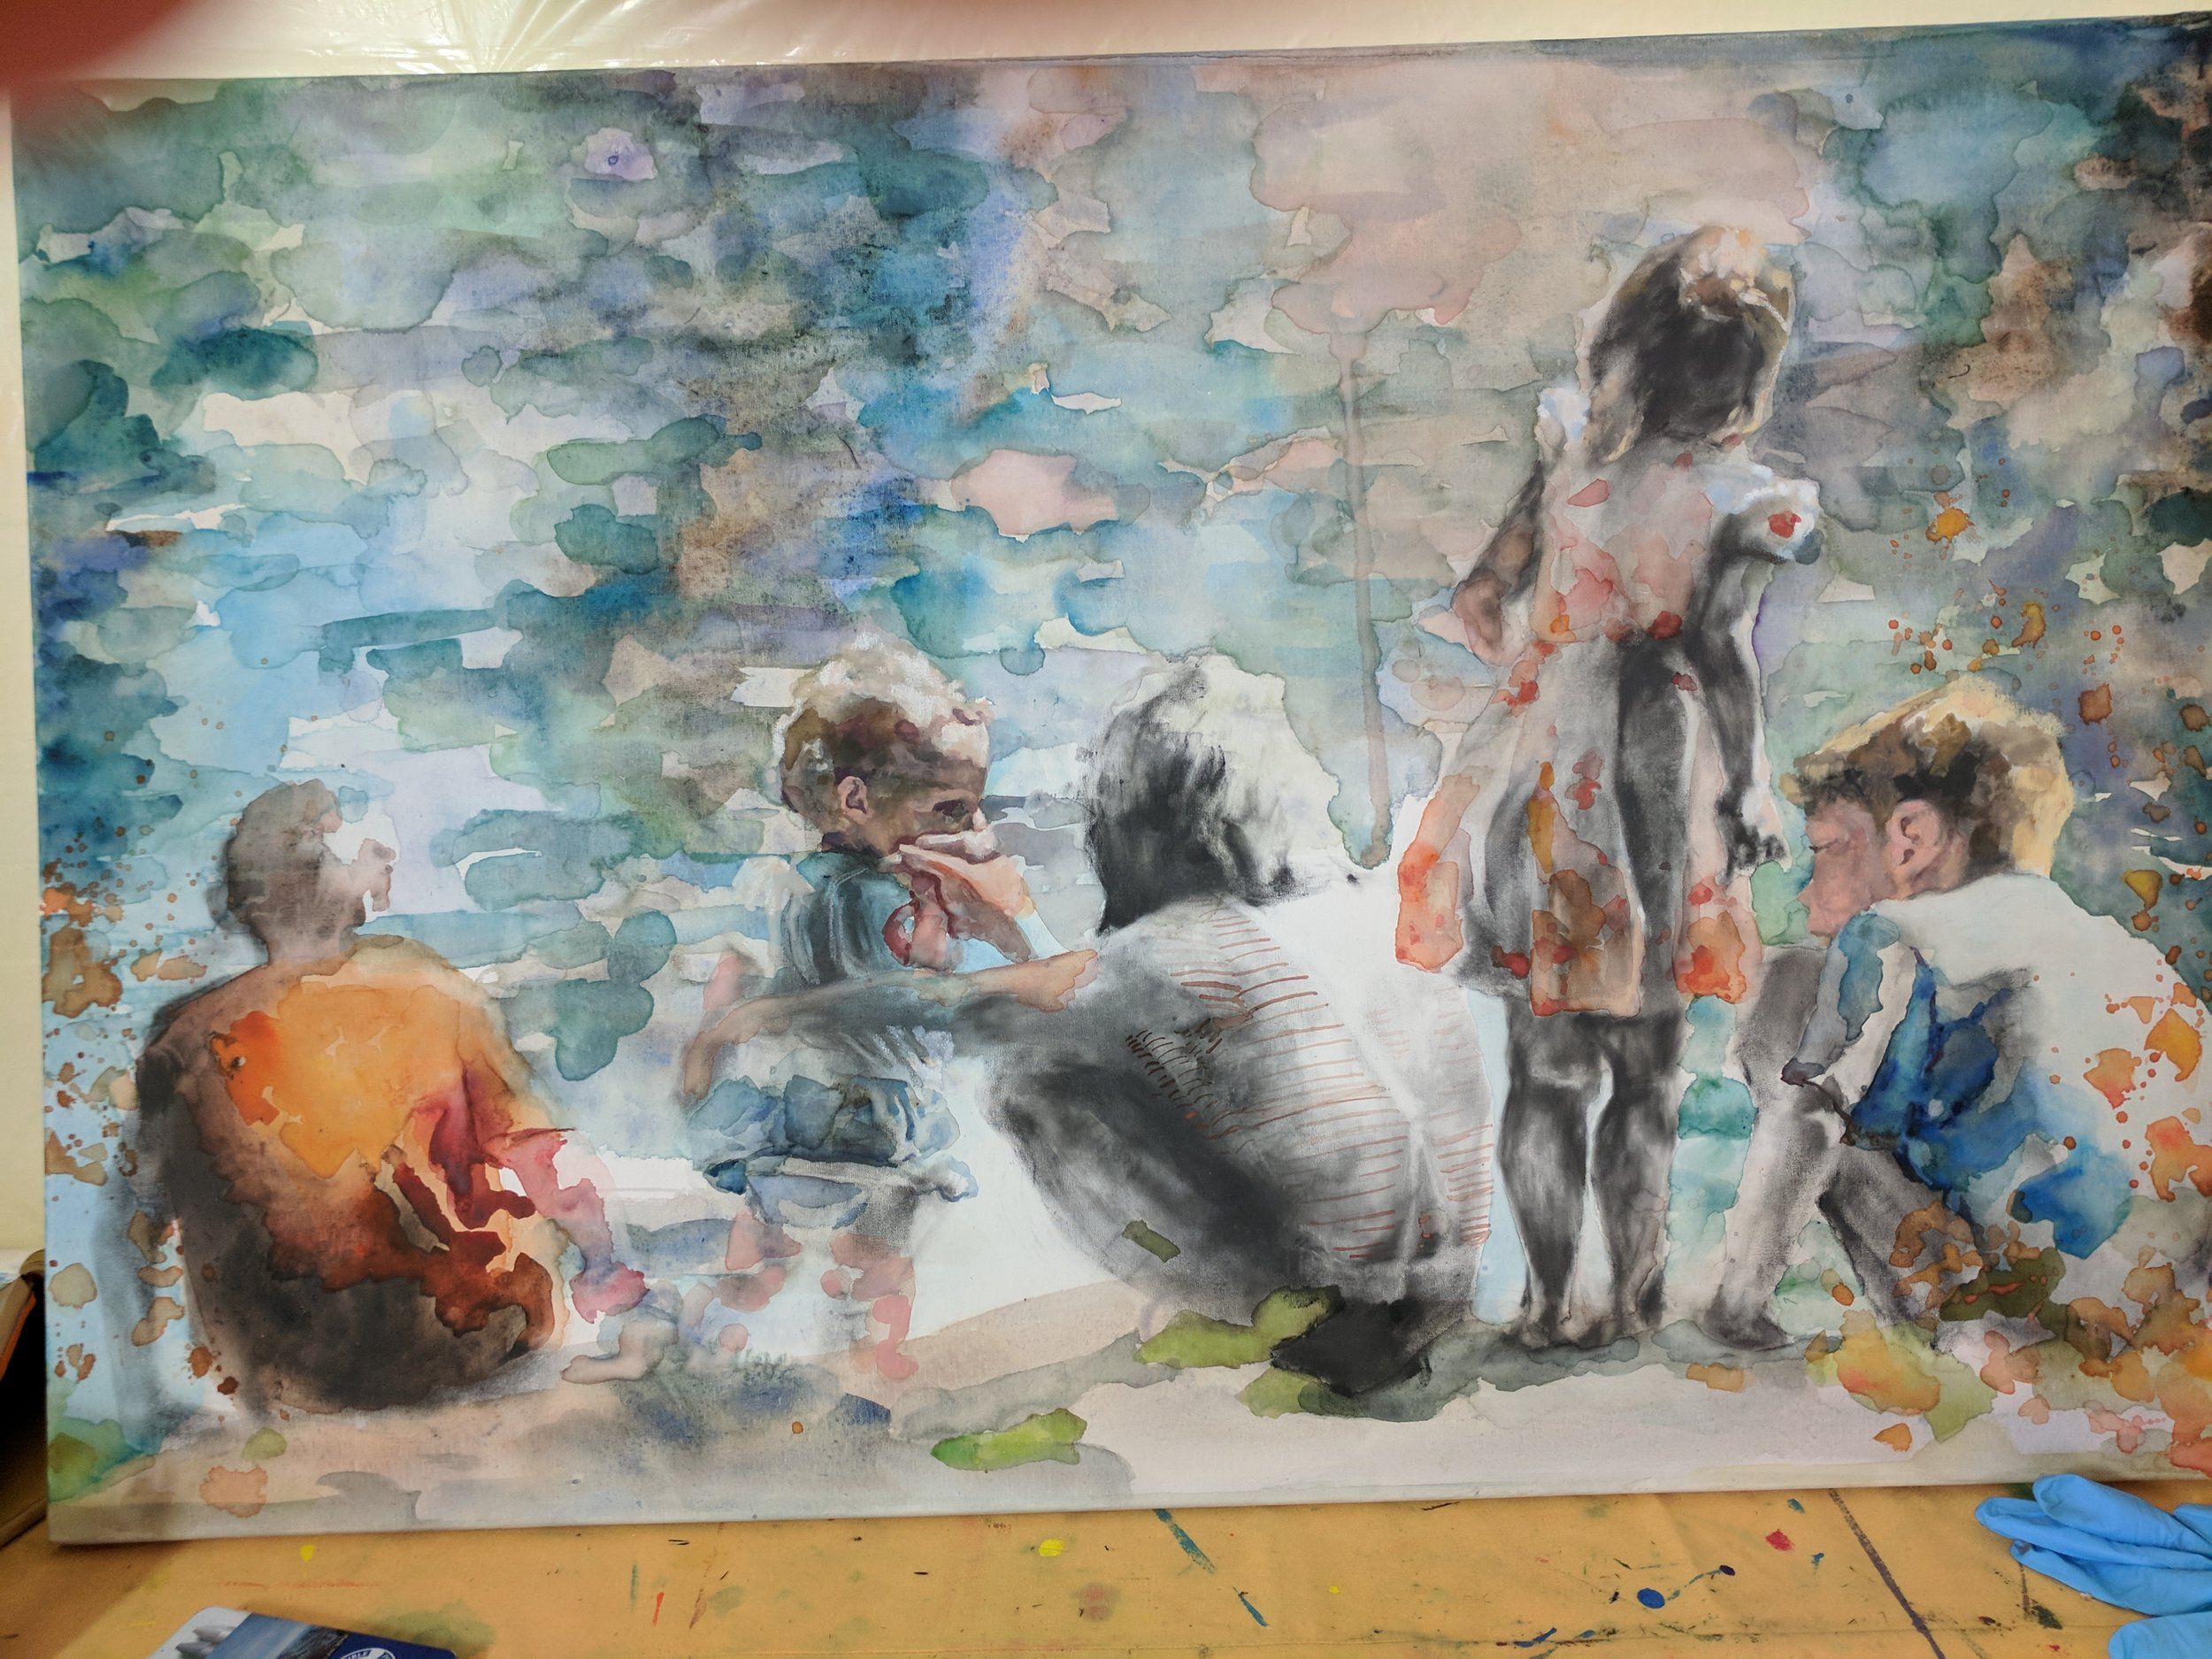 Session #5 and #6 After working with loose graphite, I had to spend some time cleaning up the overall surface of the canvas which made a surprising difference in seeing all of the watercolor layers that had been hidden underneath. In these sessions, more warmth was added to the background to counterbalance the bright orange figure on the left.  Highlights and details were added to the female figure on the right and both heads were given stronger structure.